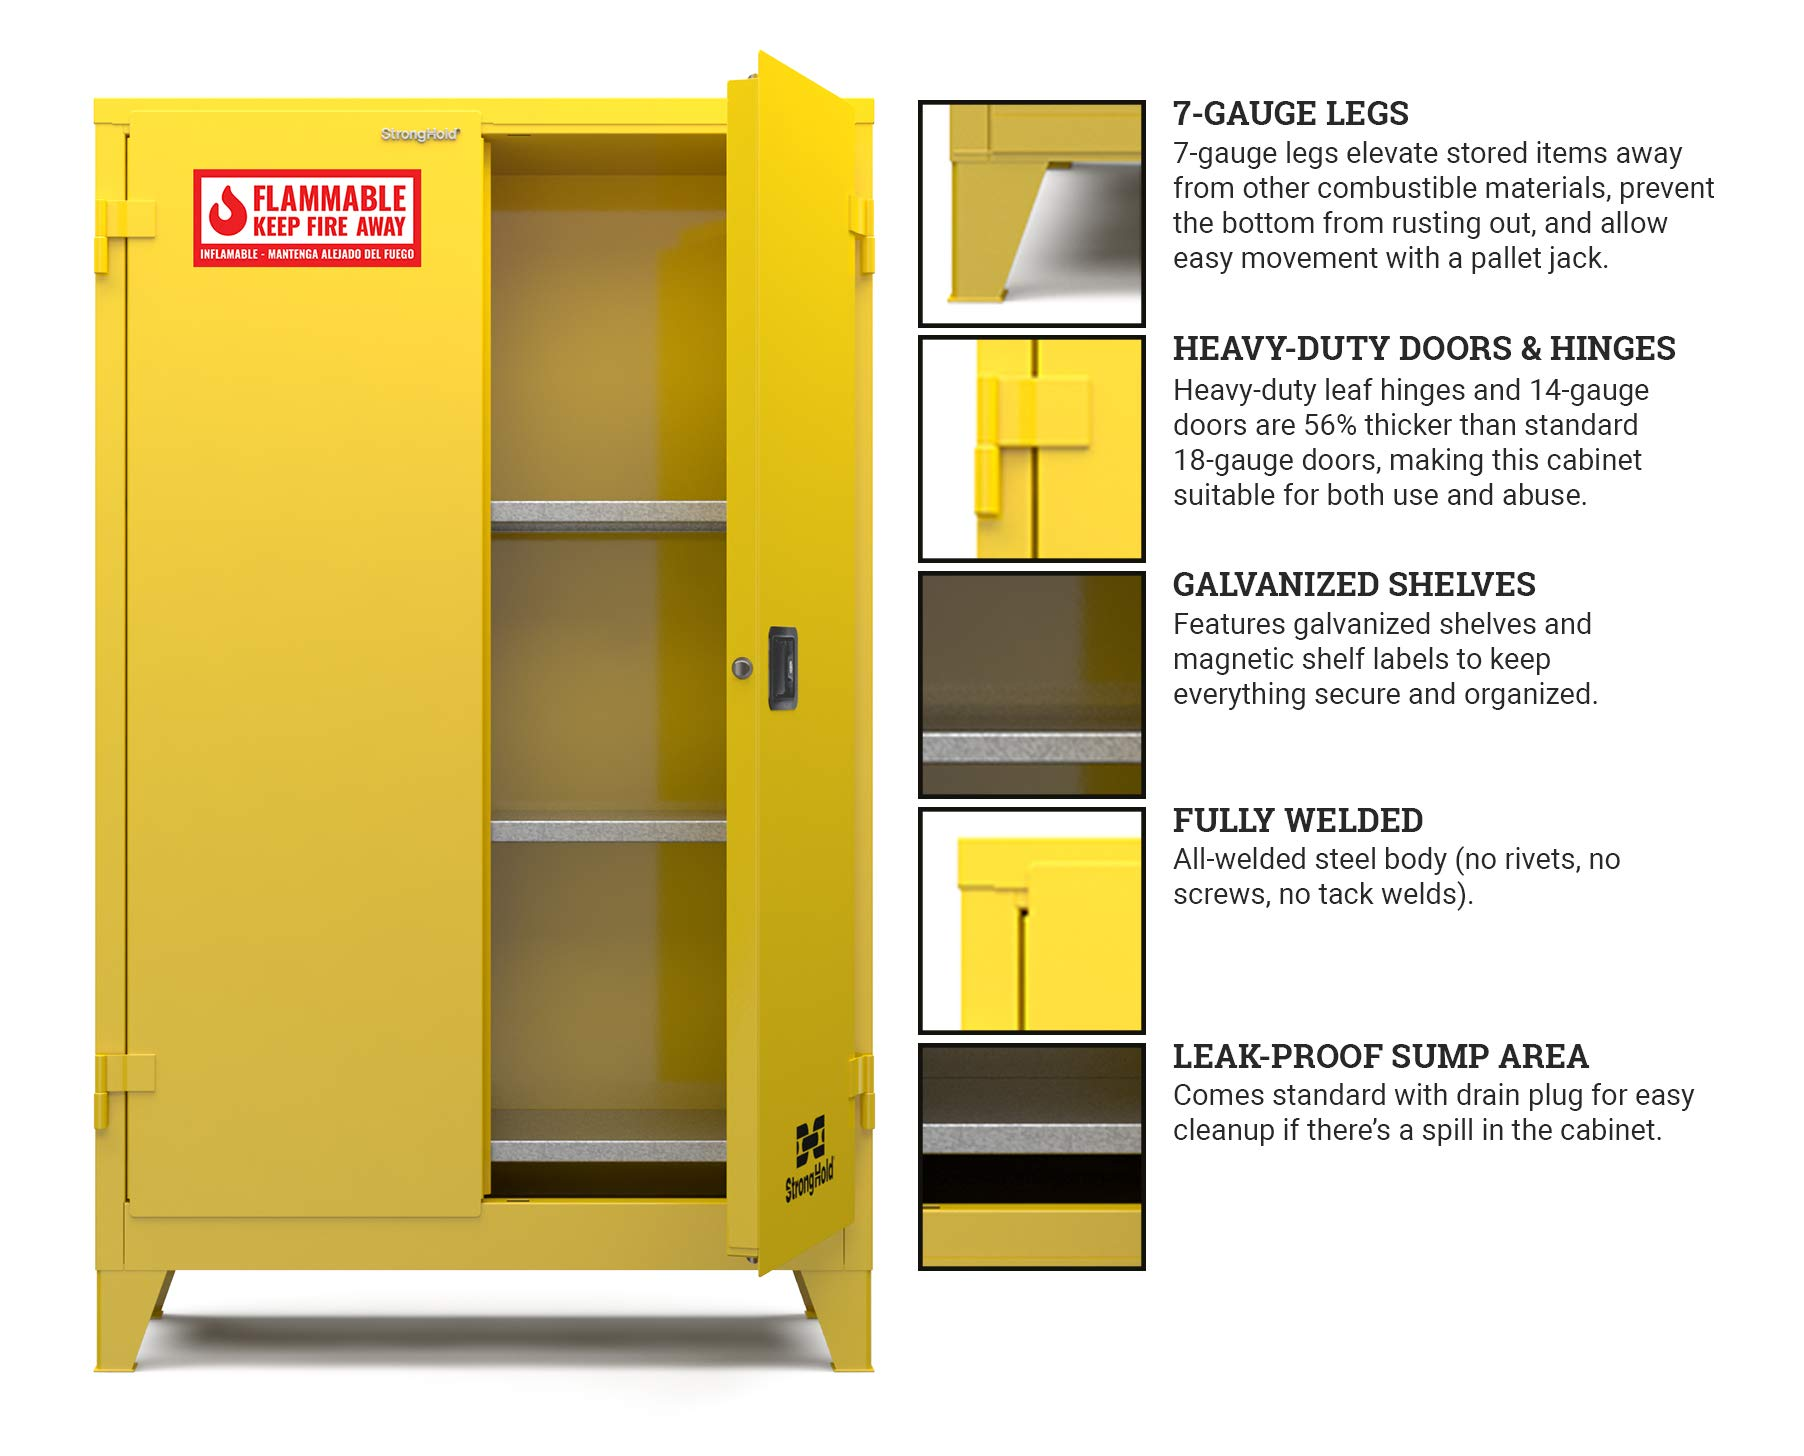 """Strong Hold-Heavy-duty Doors and Hinges,3 Shelves, 6 Magnetic Shelf Labels, Heavy-Duty 6"""" Legs, 15-Yr Warranty, Safety Cabinet-Flammable, 43""""W x 18""""D X 64.5""""H, Manual Close, 45-Gallon, NFPA, CAB000017"""